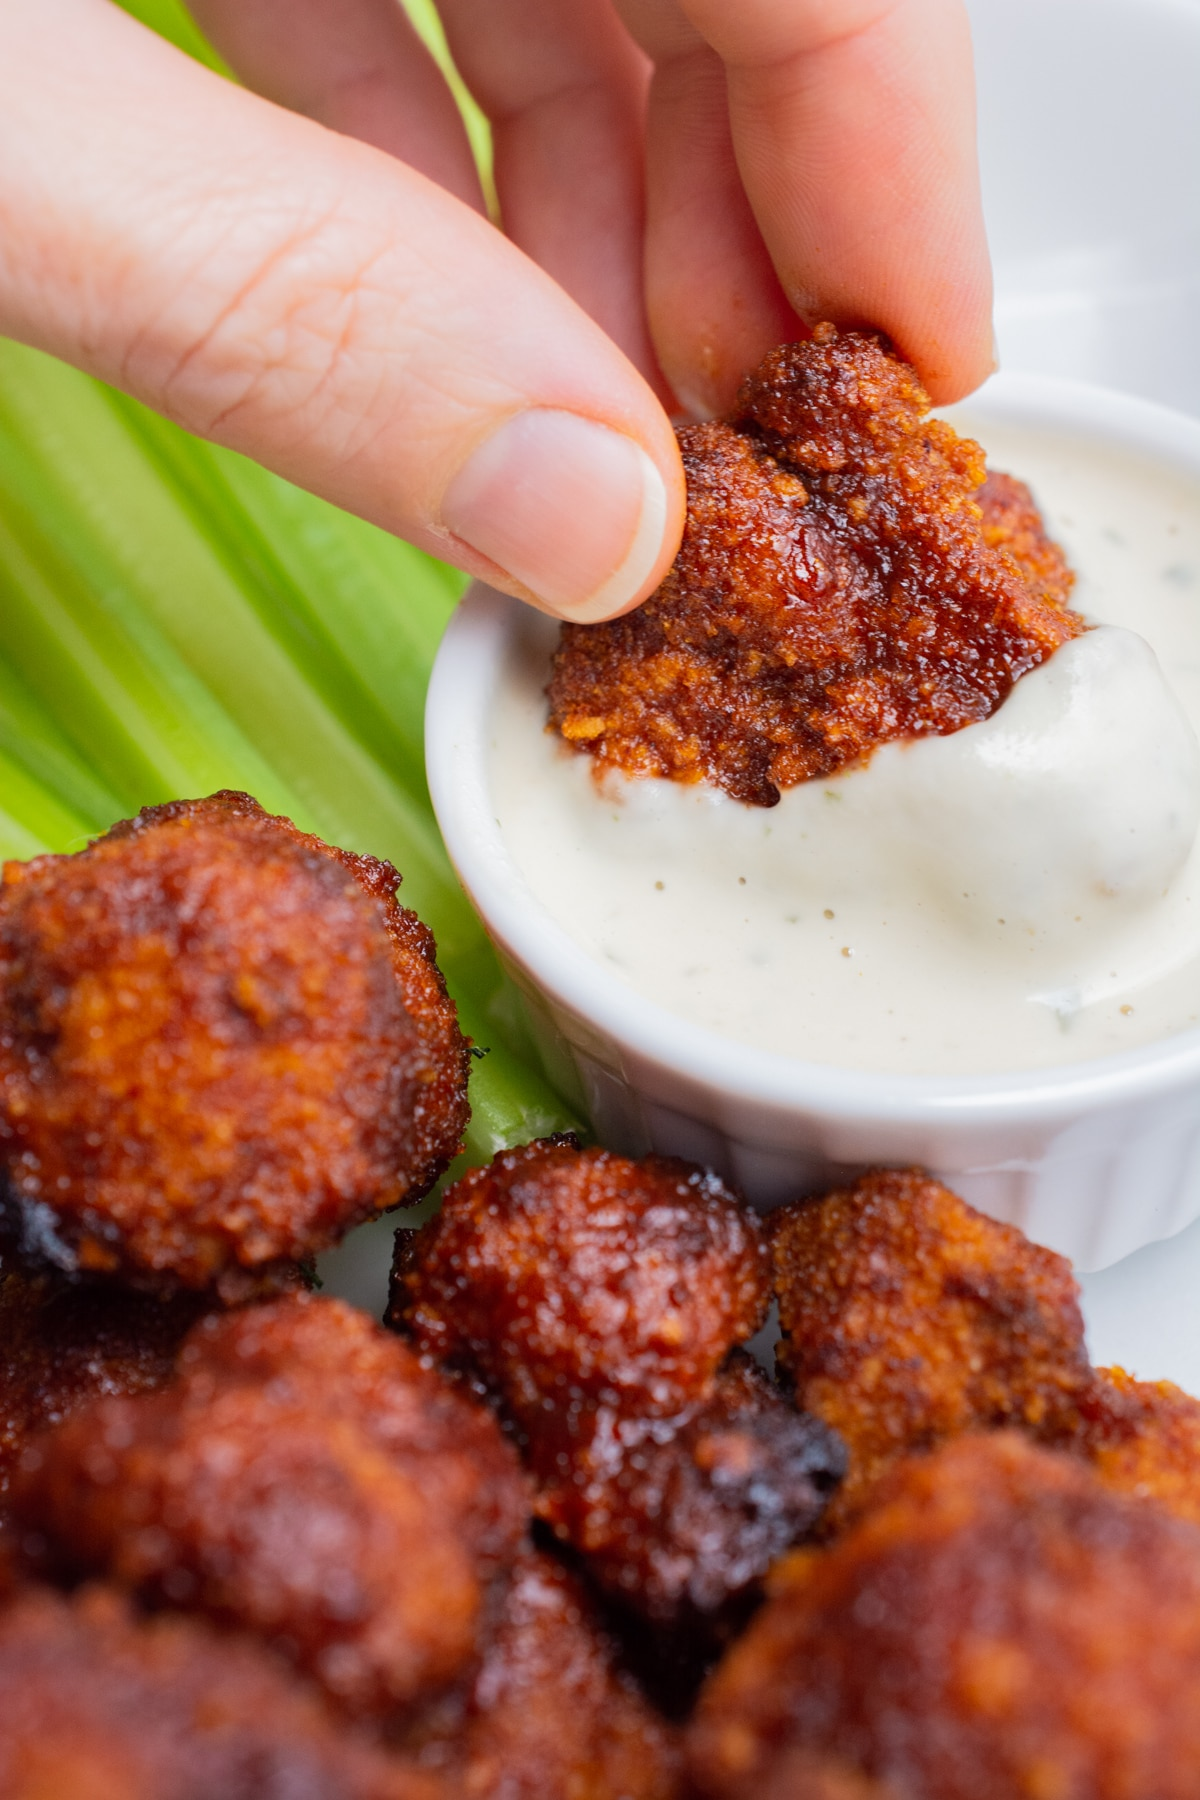 A hand dipping a BBQ Cauliflower wing in ranch.